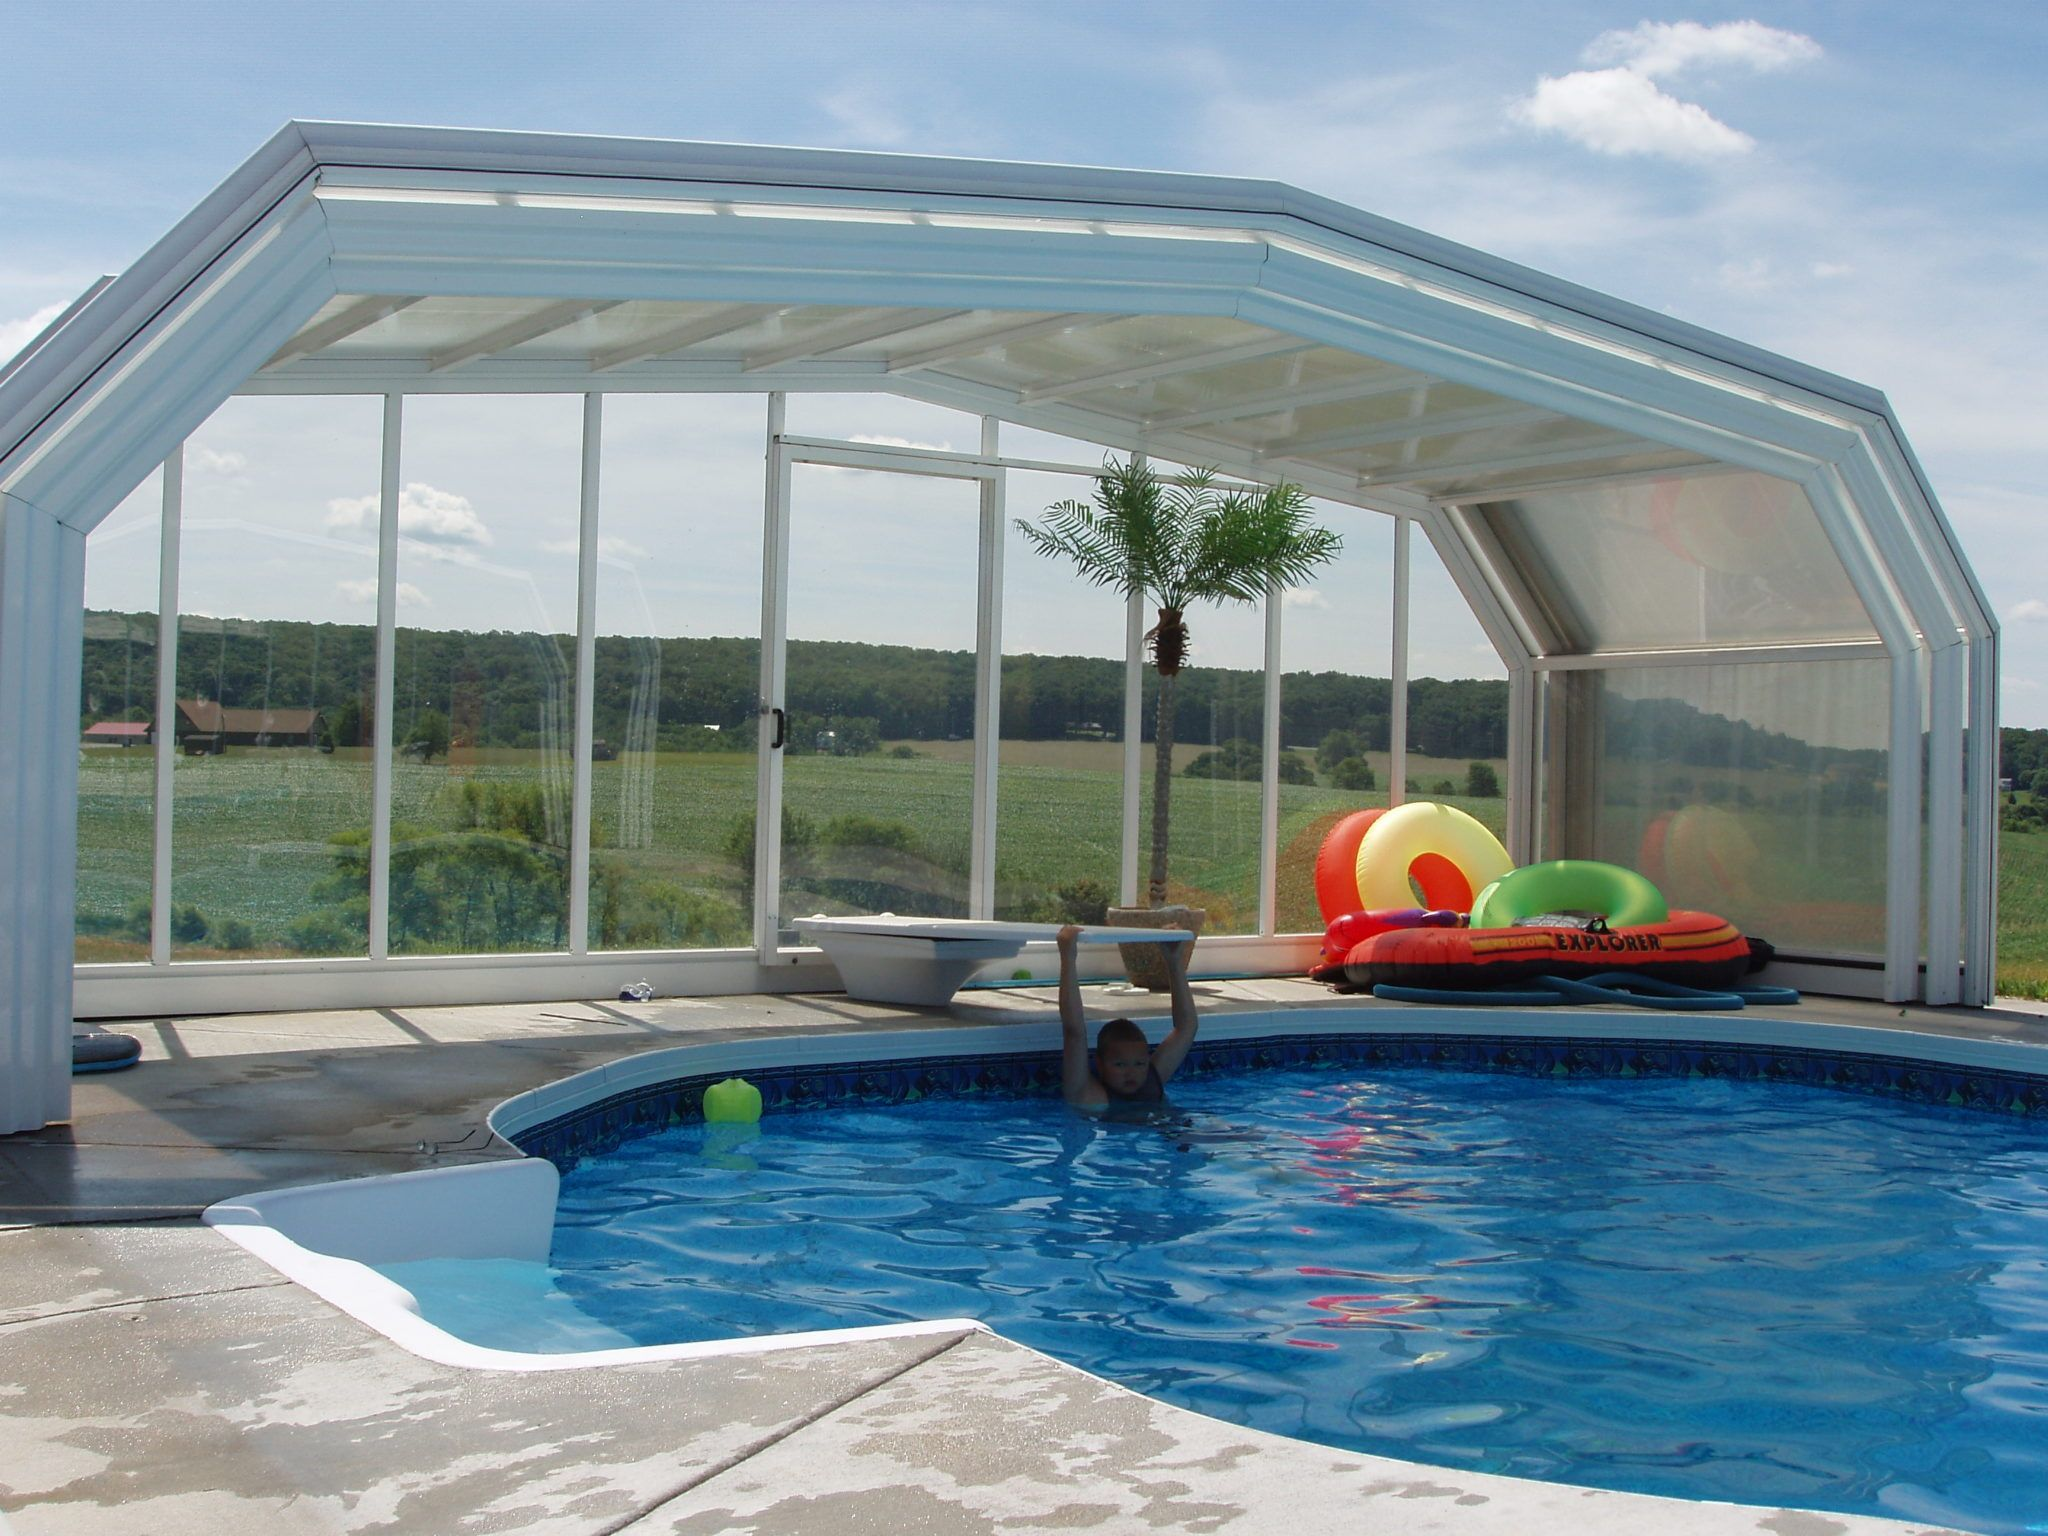 All Seasons Sunrooms Of Connecticut Manufactured By Roll A Cover In 2020 Swimming Pool Enclosures Pool Enclosures Outdoor Swim Spa